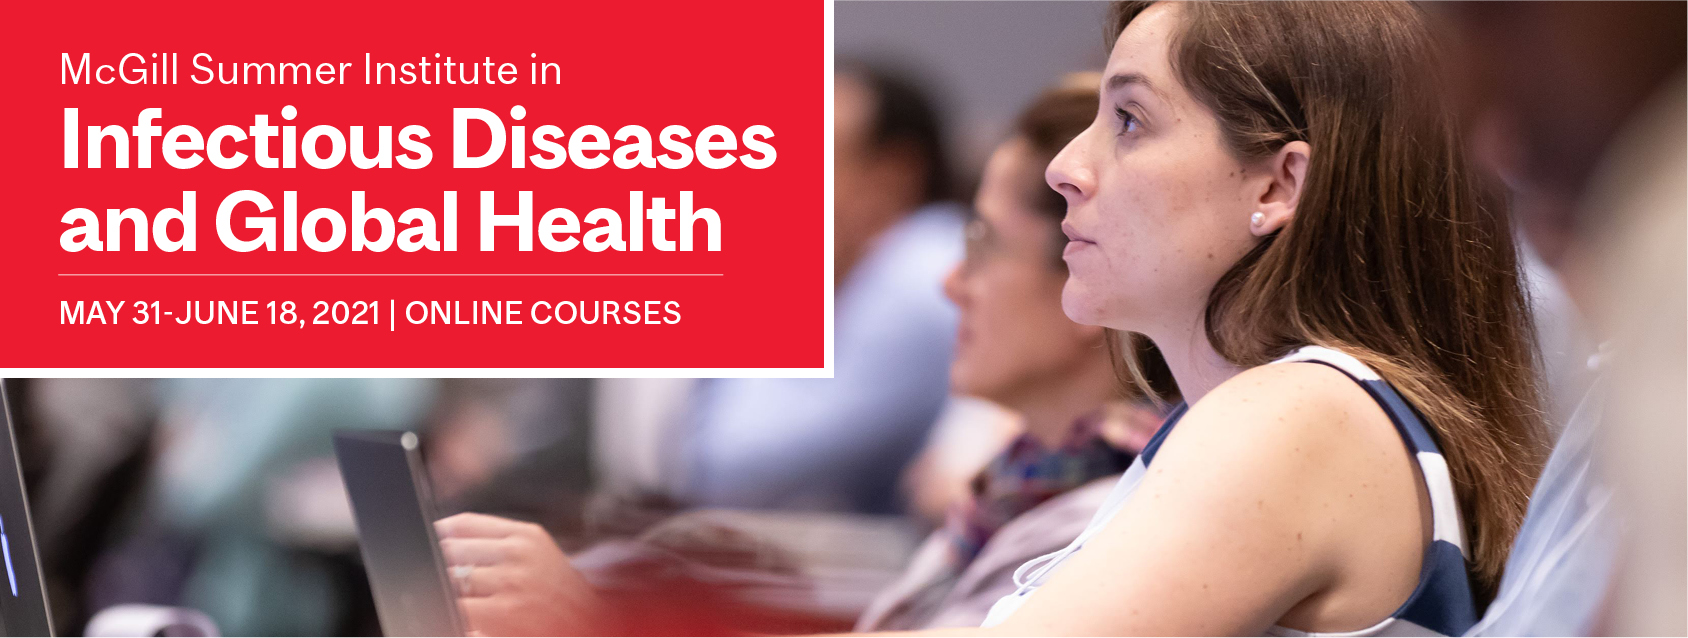 McGill Summer Institute in Infectious Diseases and Global Health 2021 Banner